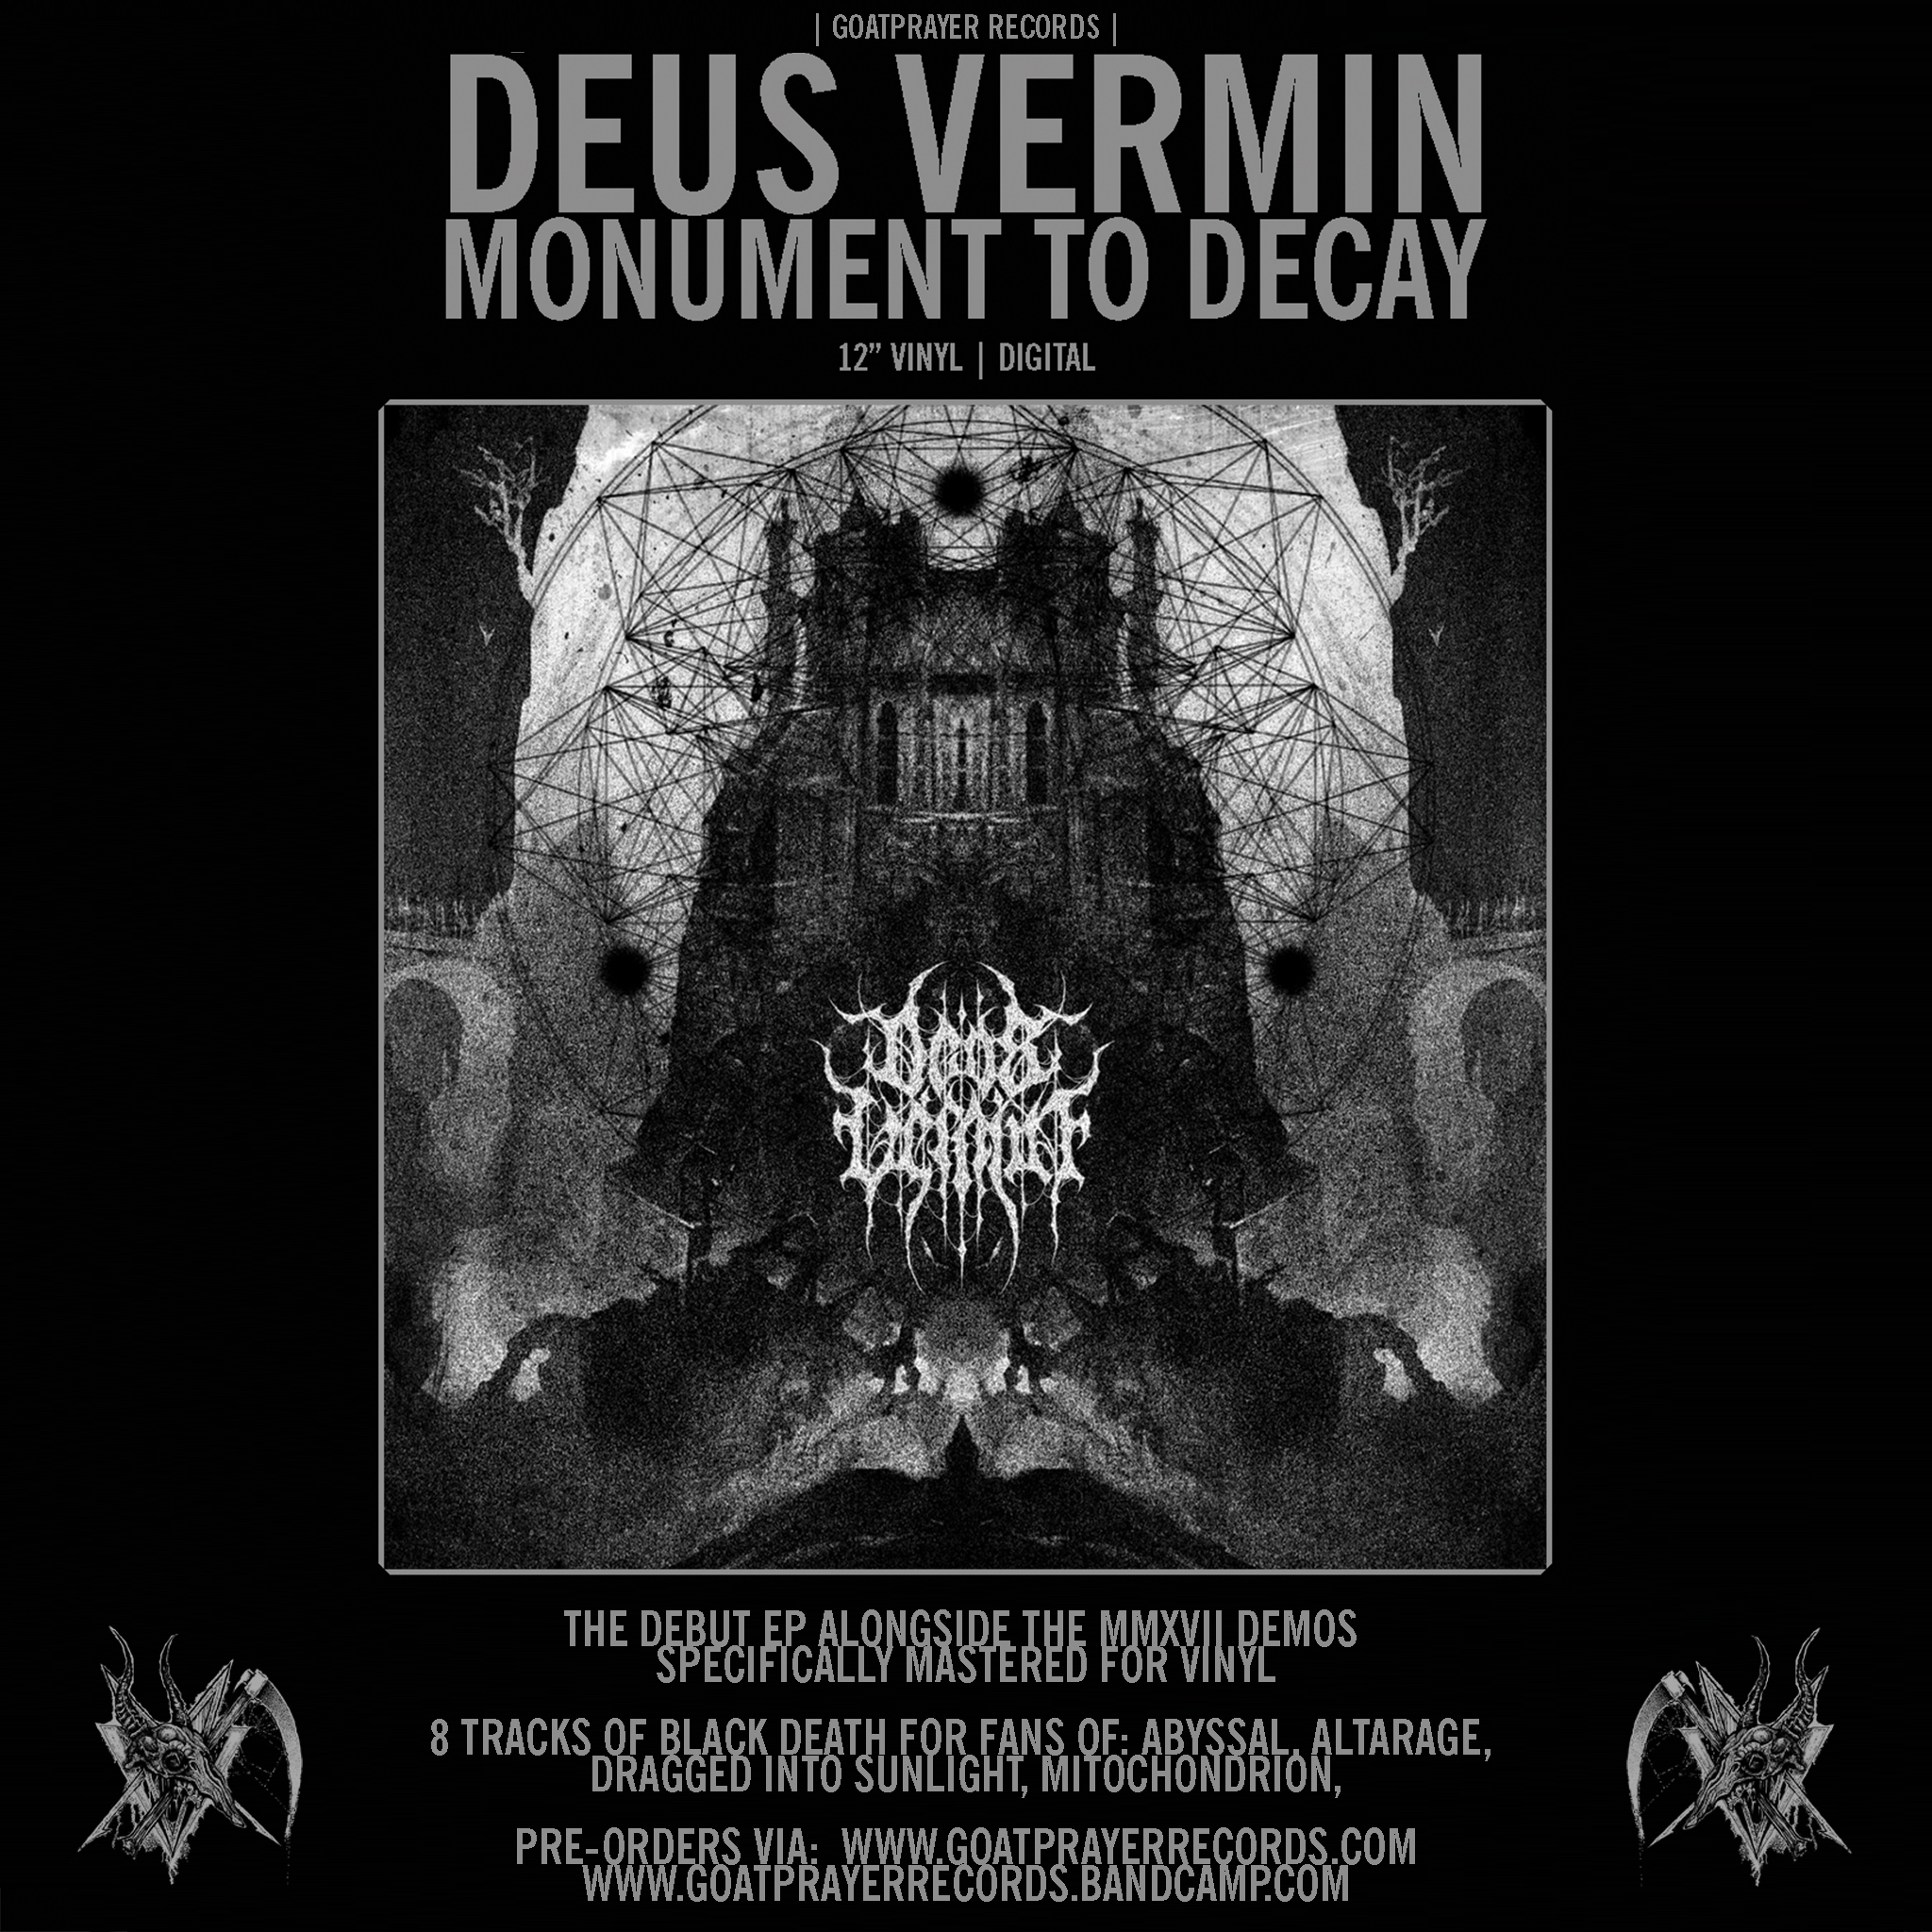 deus vermin announcement